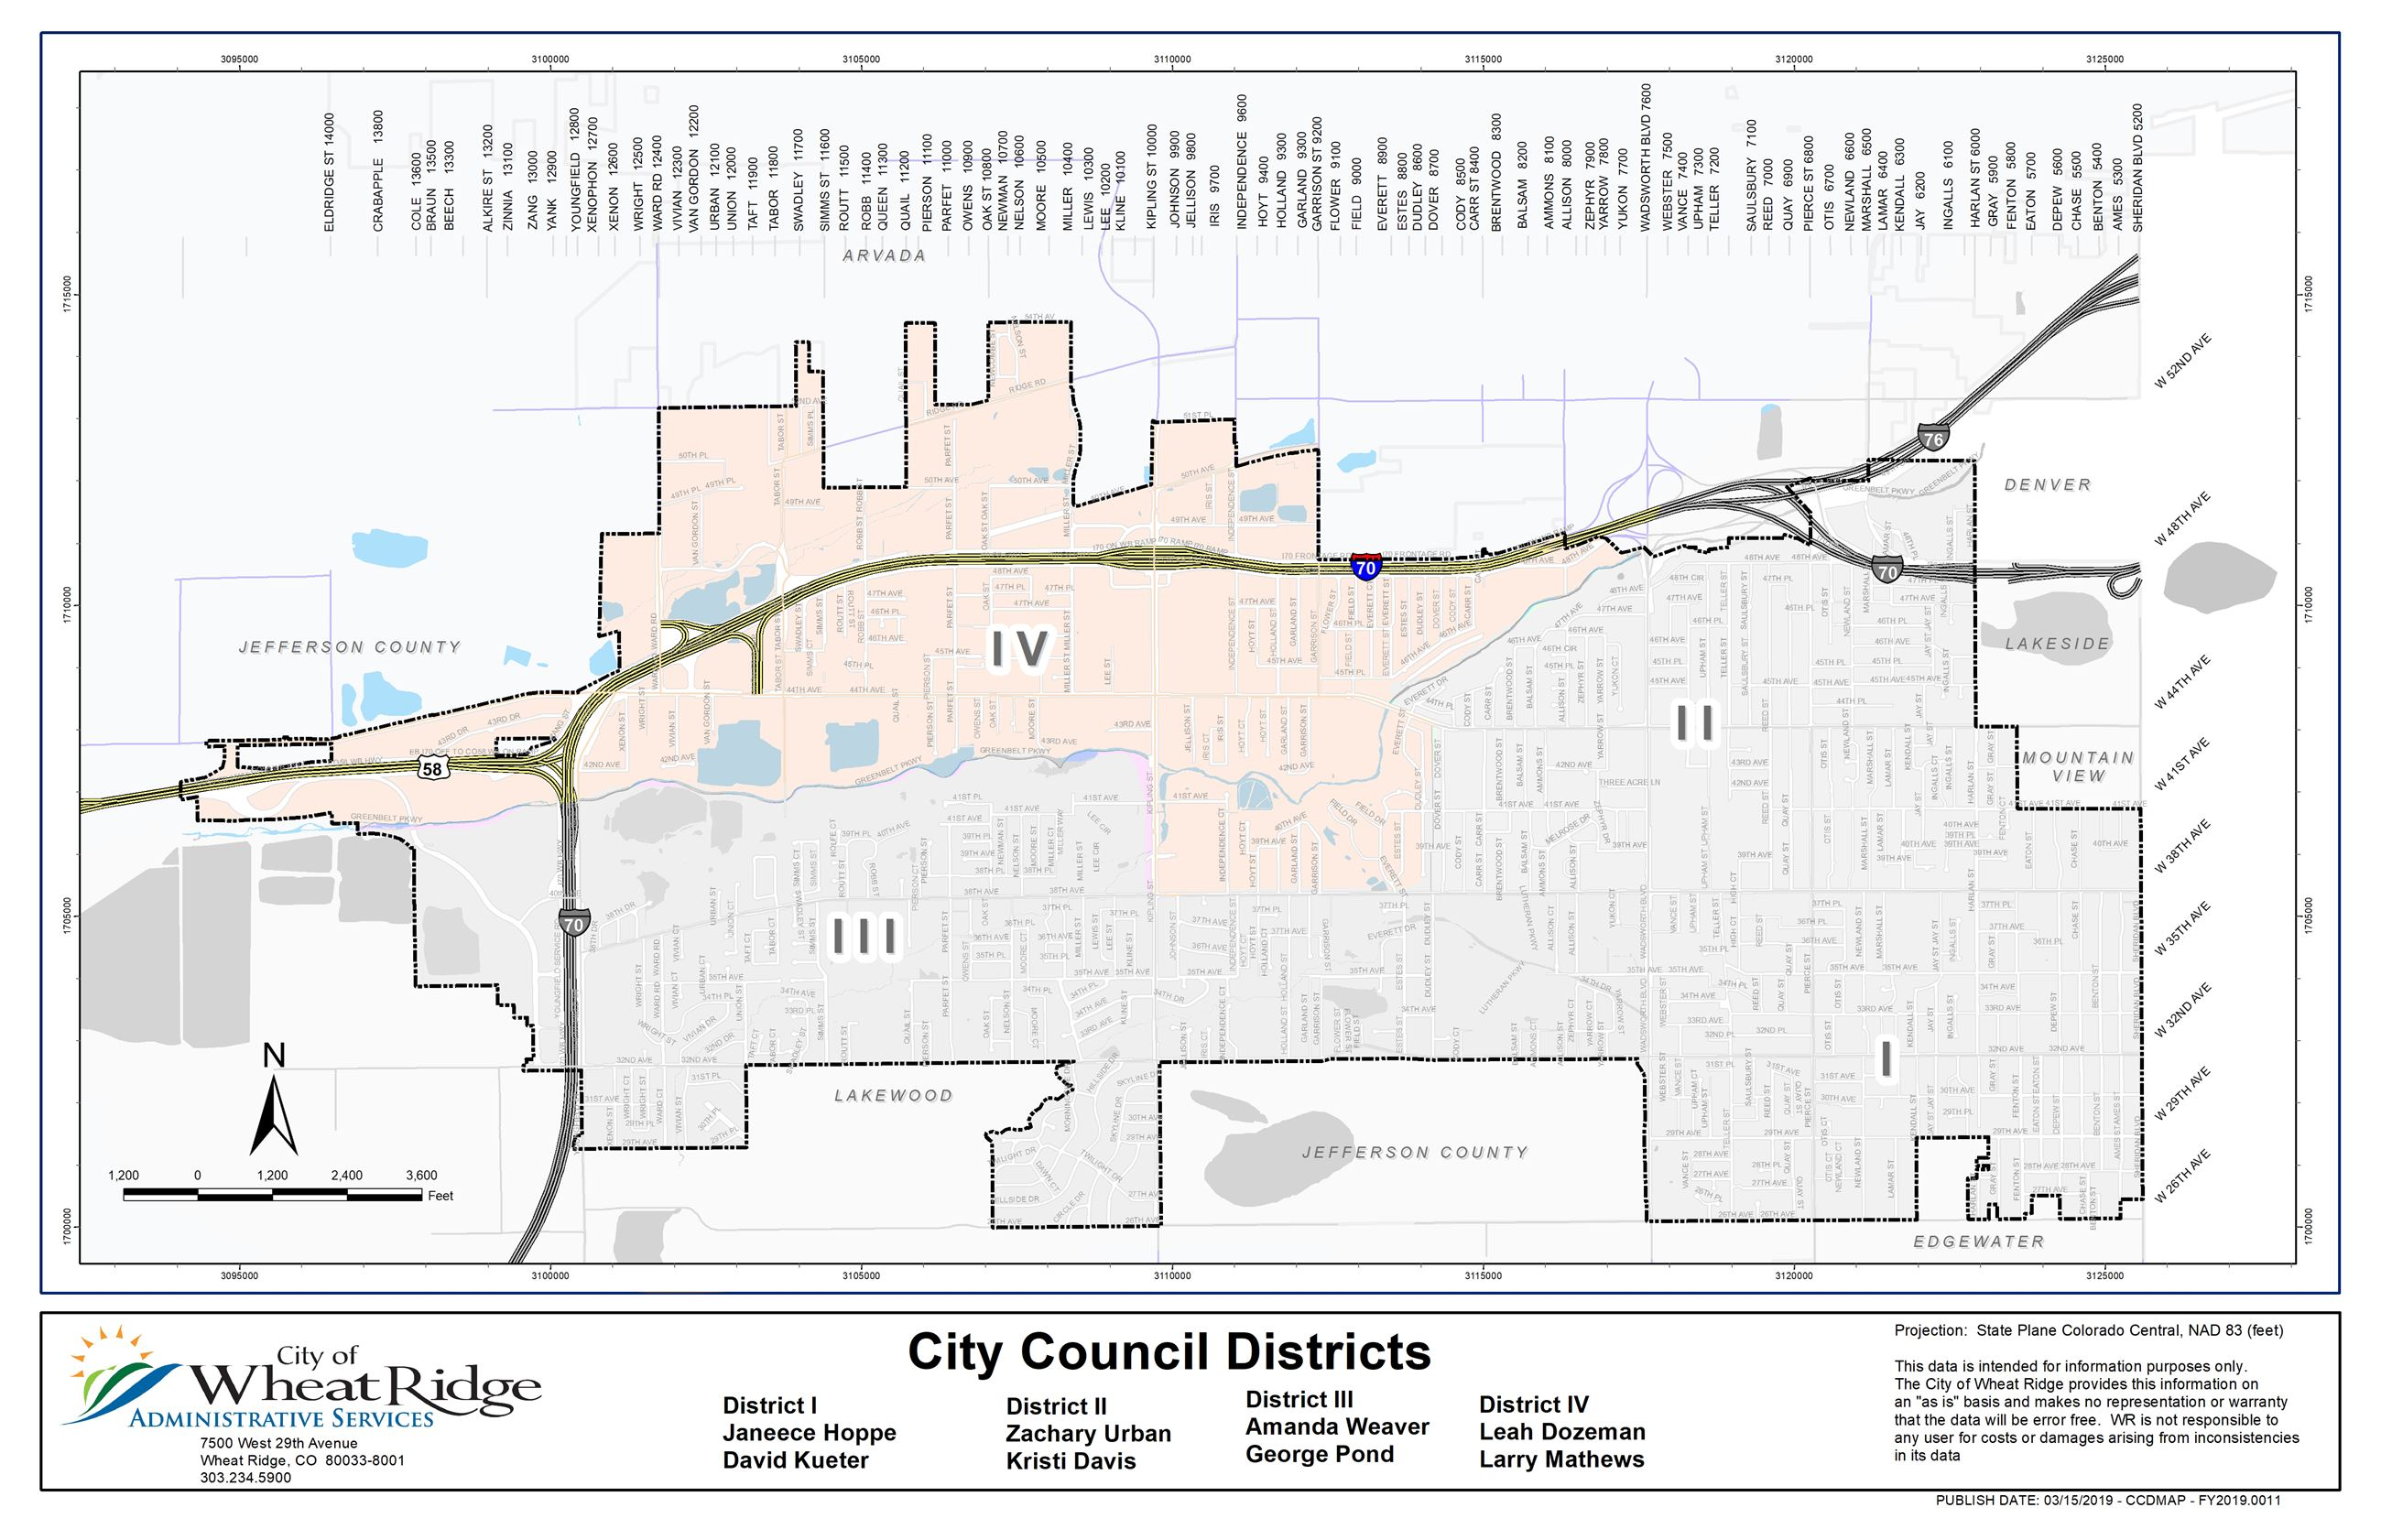 Wheat Ridge District IV